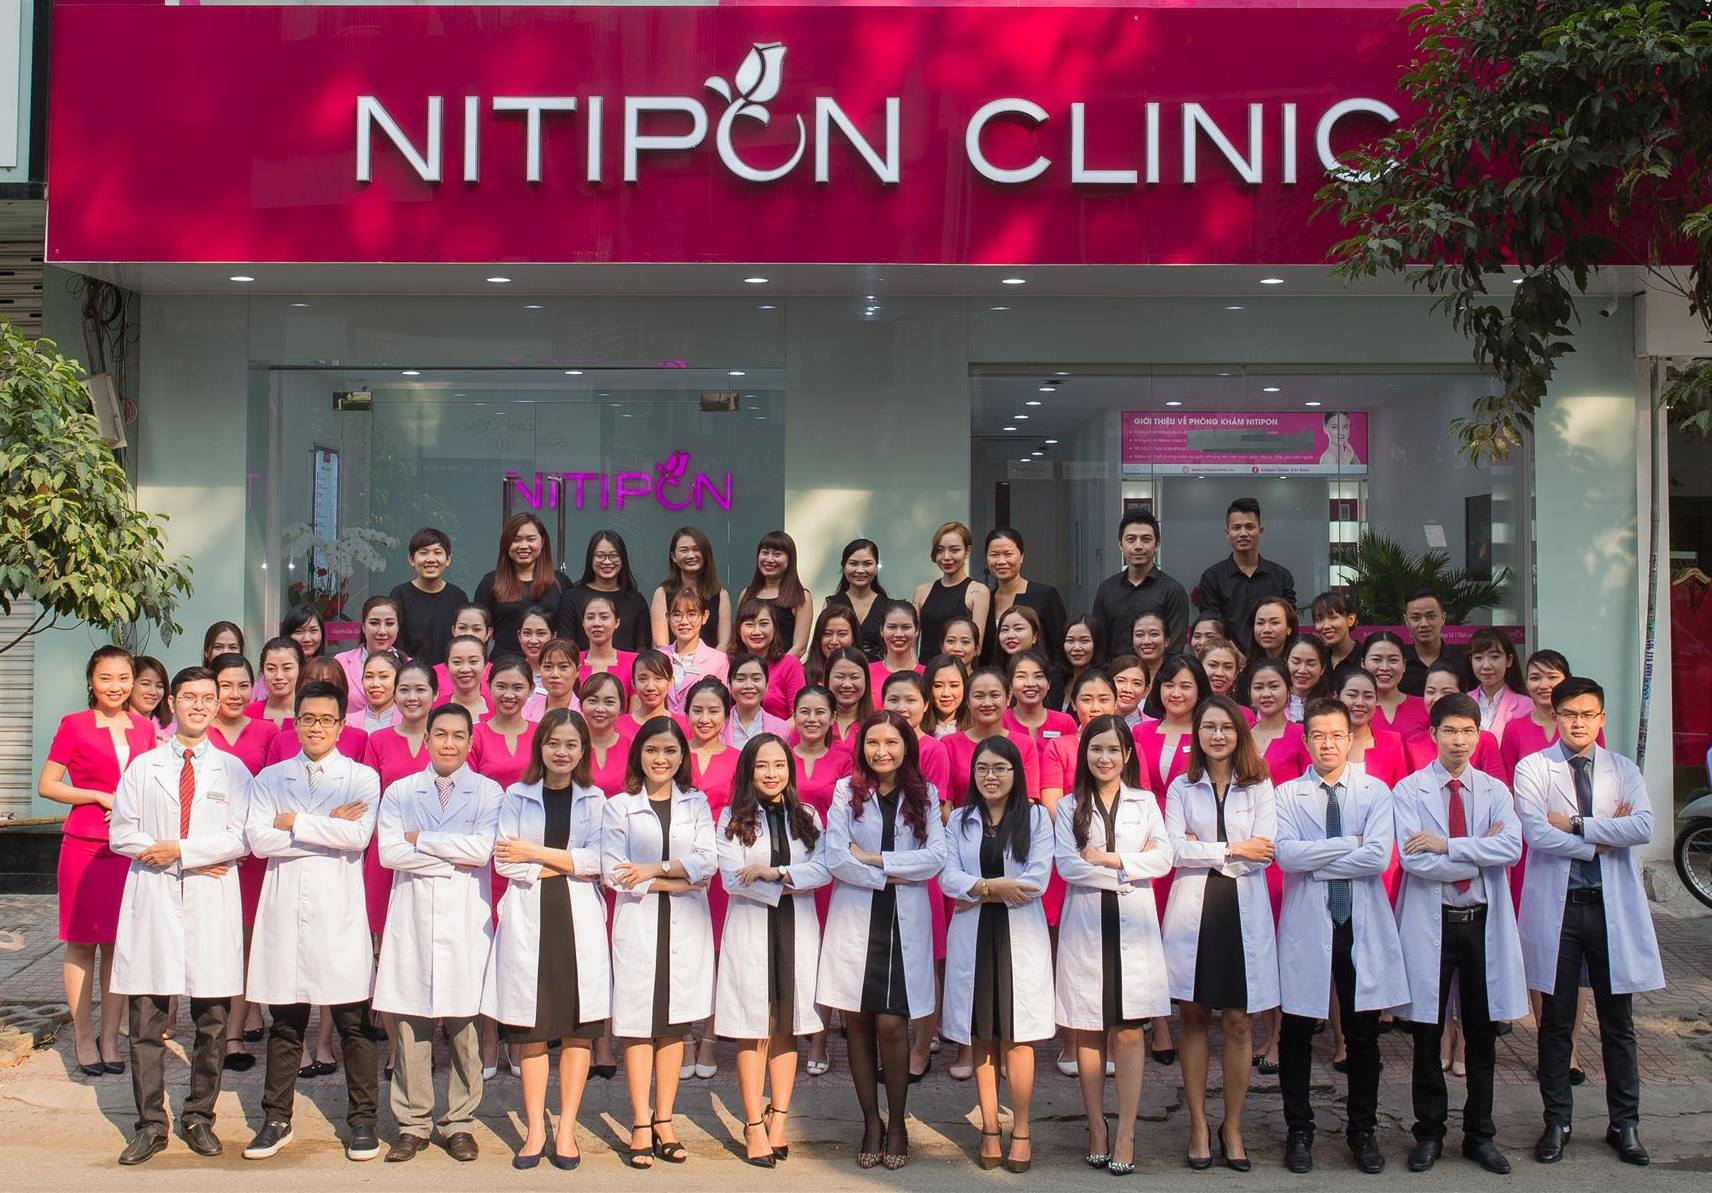 DOUBLE N AETHETICS VIETNAM ONE MEMBER LLC- NITIPON CLINIC VIETNAM